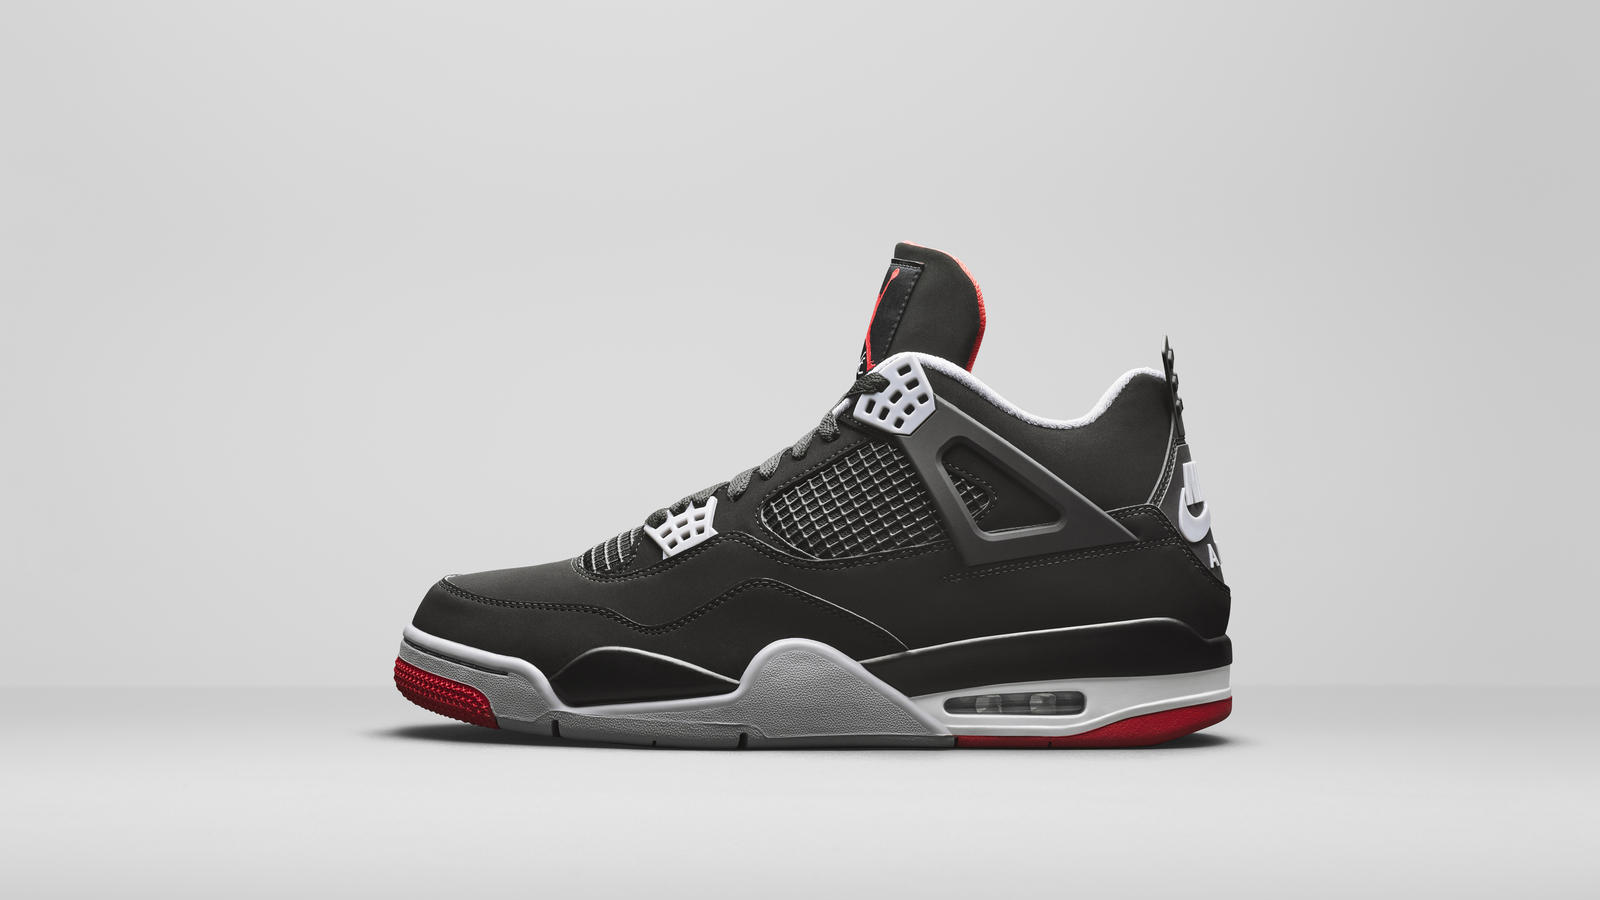 d9228759ba3 Air Jordan 4 Bred Official Images and Release Date - Nike News